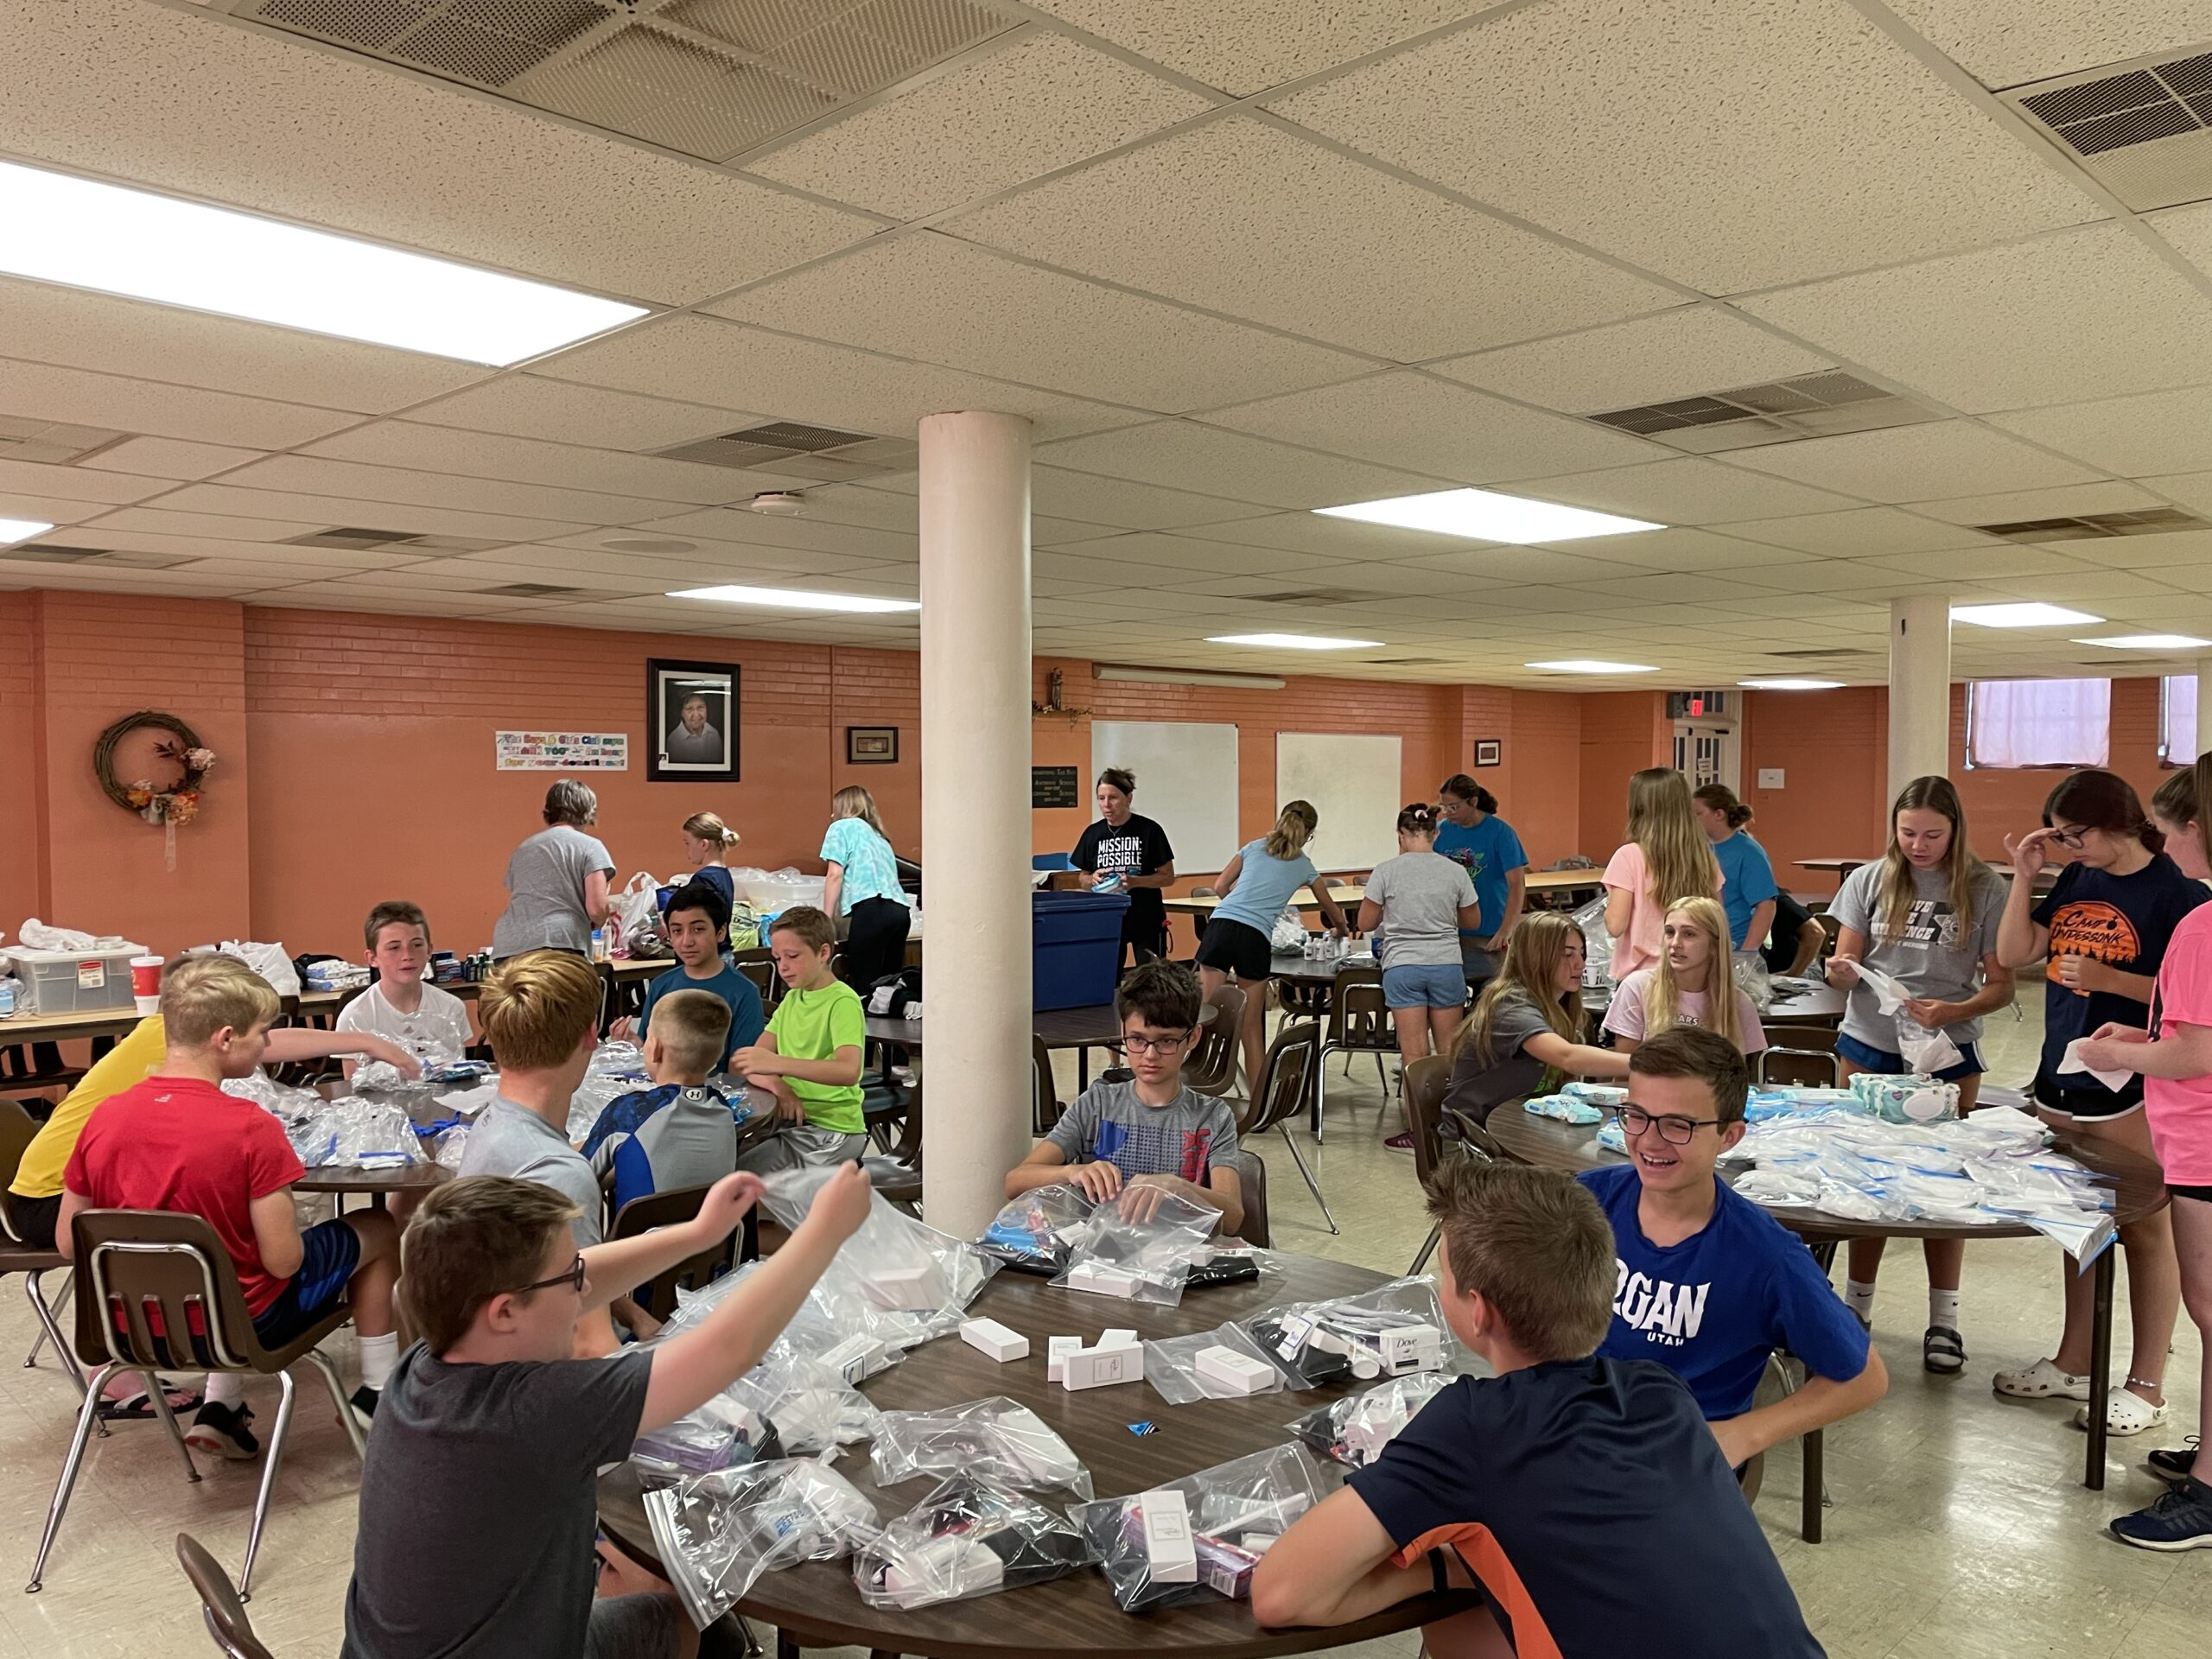 Each Monday in June, Holy Redeemer Parish and All Saints Parish youth had opportunities to serve the community at different locations. On June 28, they gathered at St. Anthony of Padua Church's cafeteria in Evansville to assemble necessity bags for the All Saints Soup Kitchen and Clothes Closet.  Submitted photo